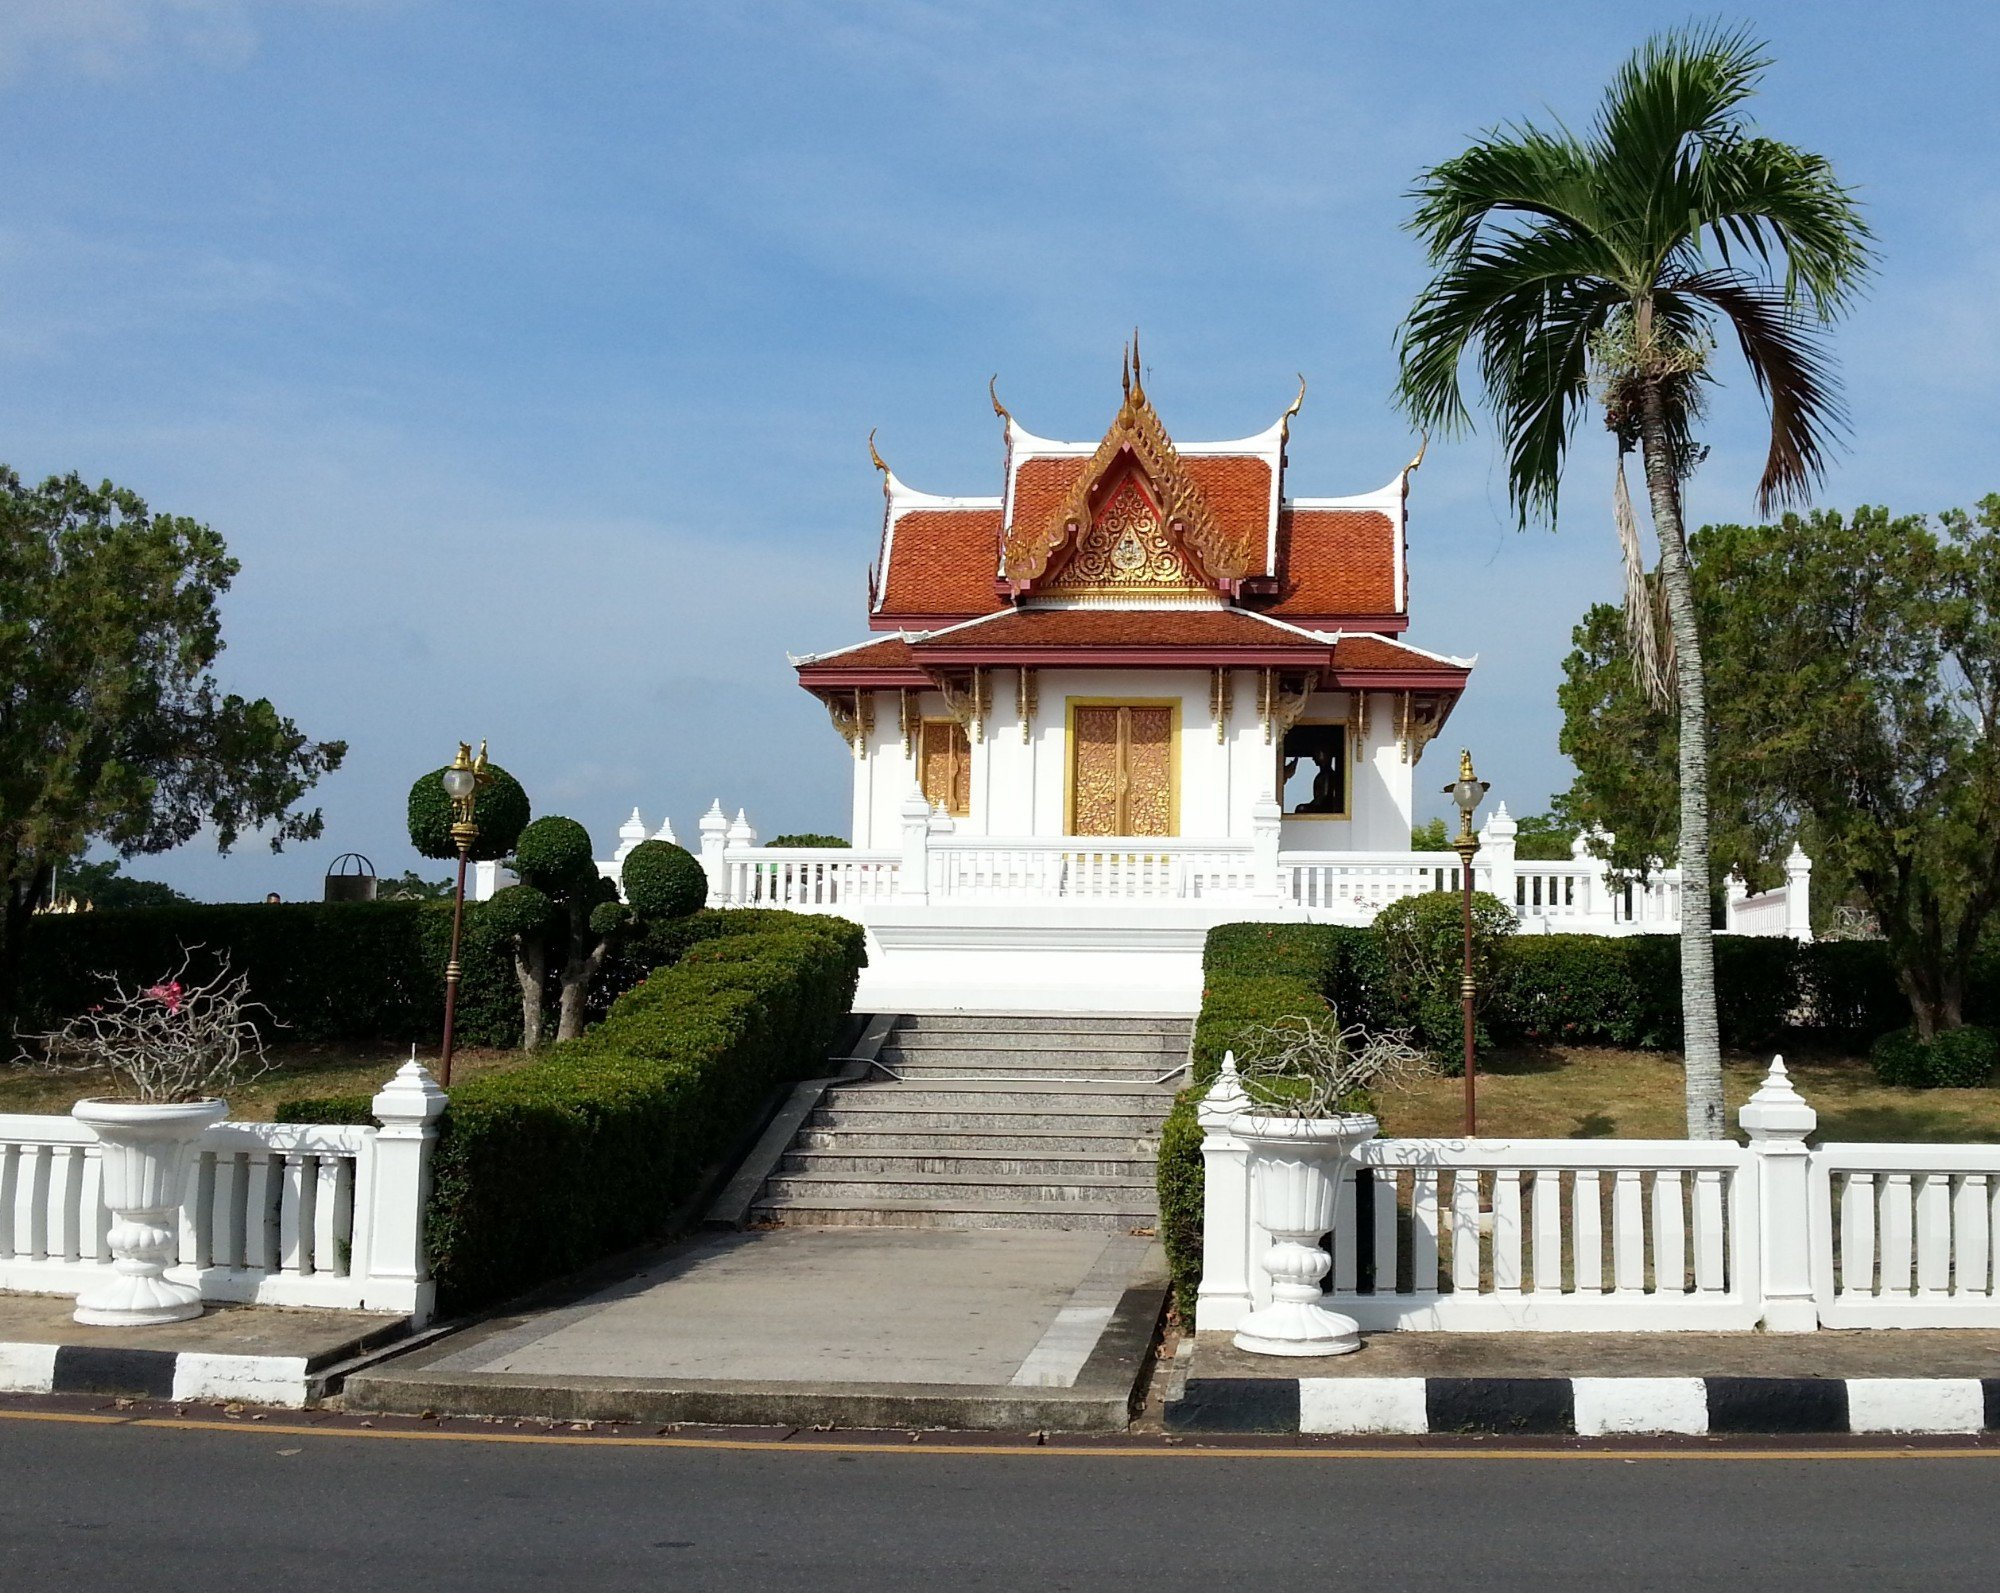 Building housing the Phra Phuttha Nirokhantrai Chaiwat Chaturathit